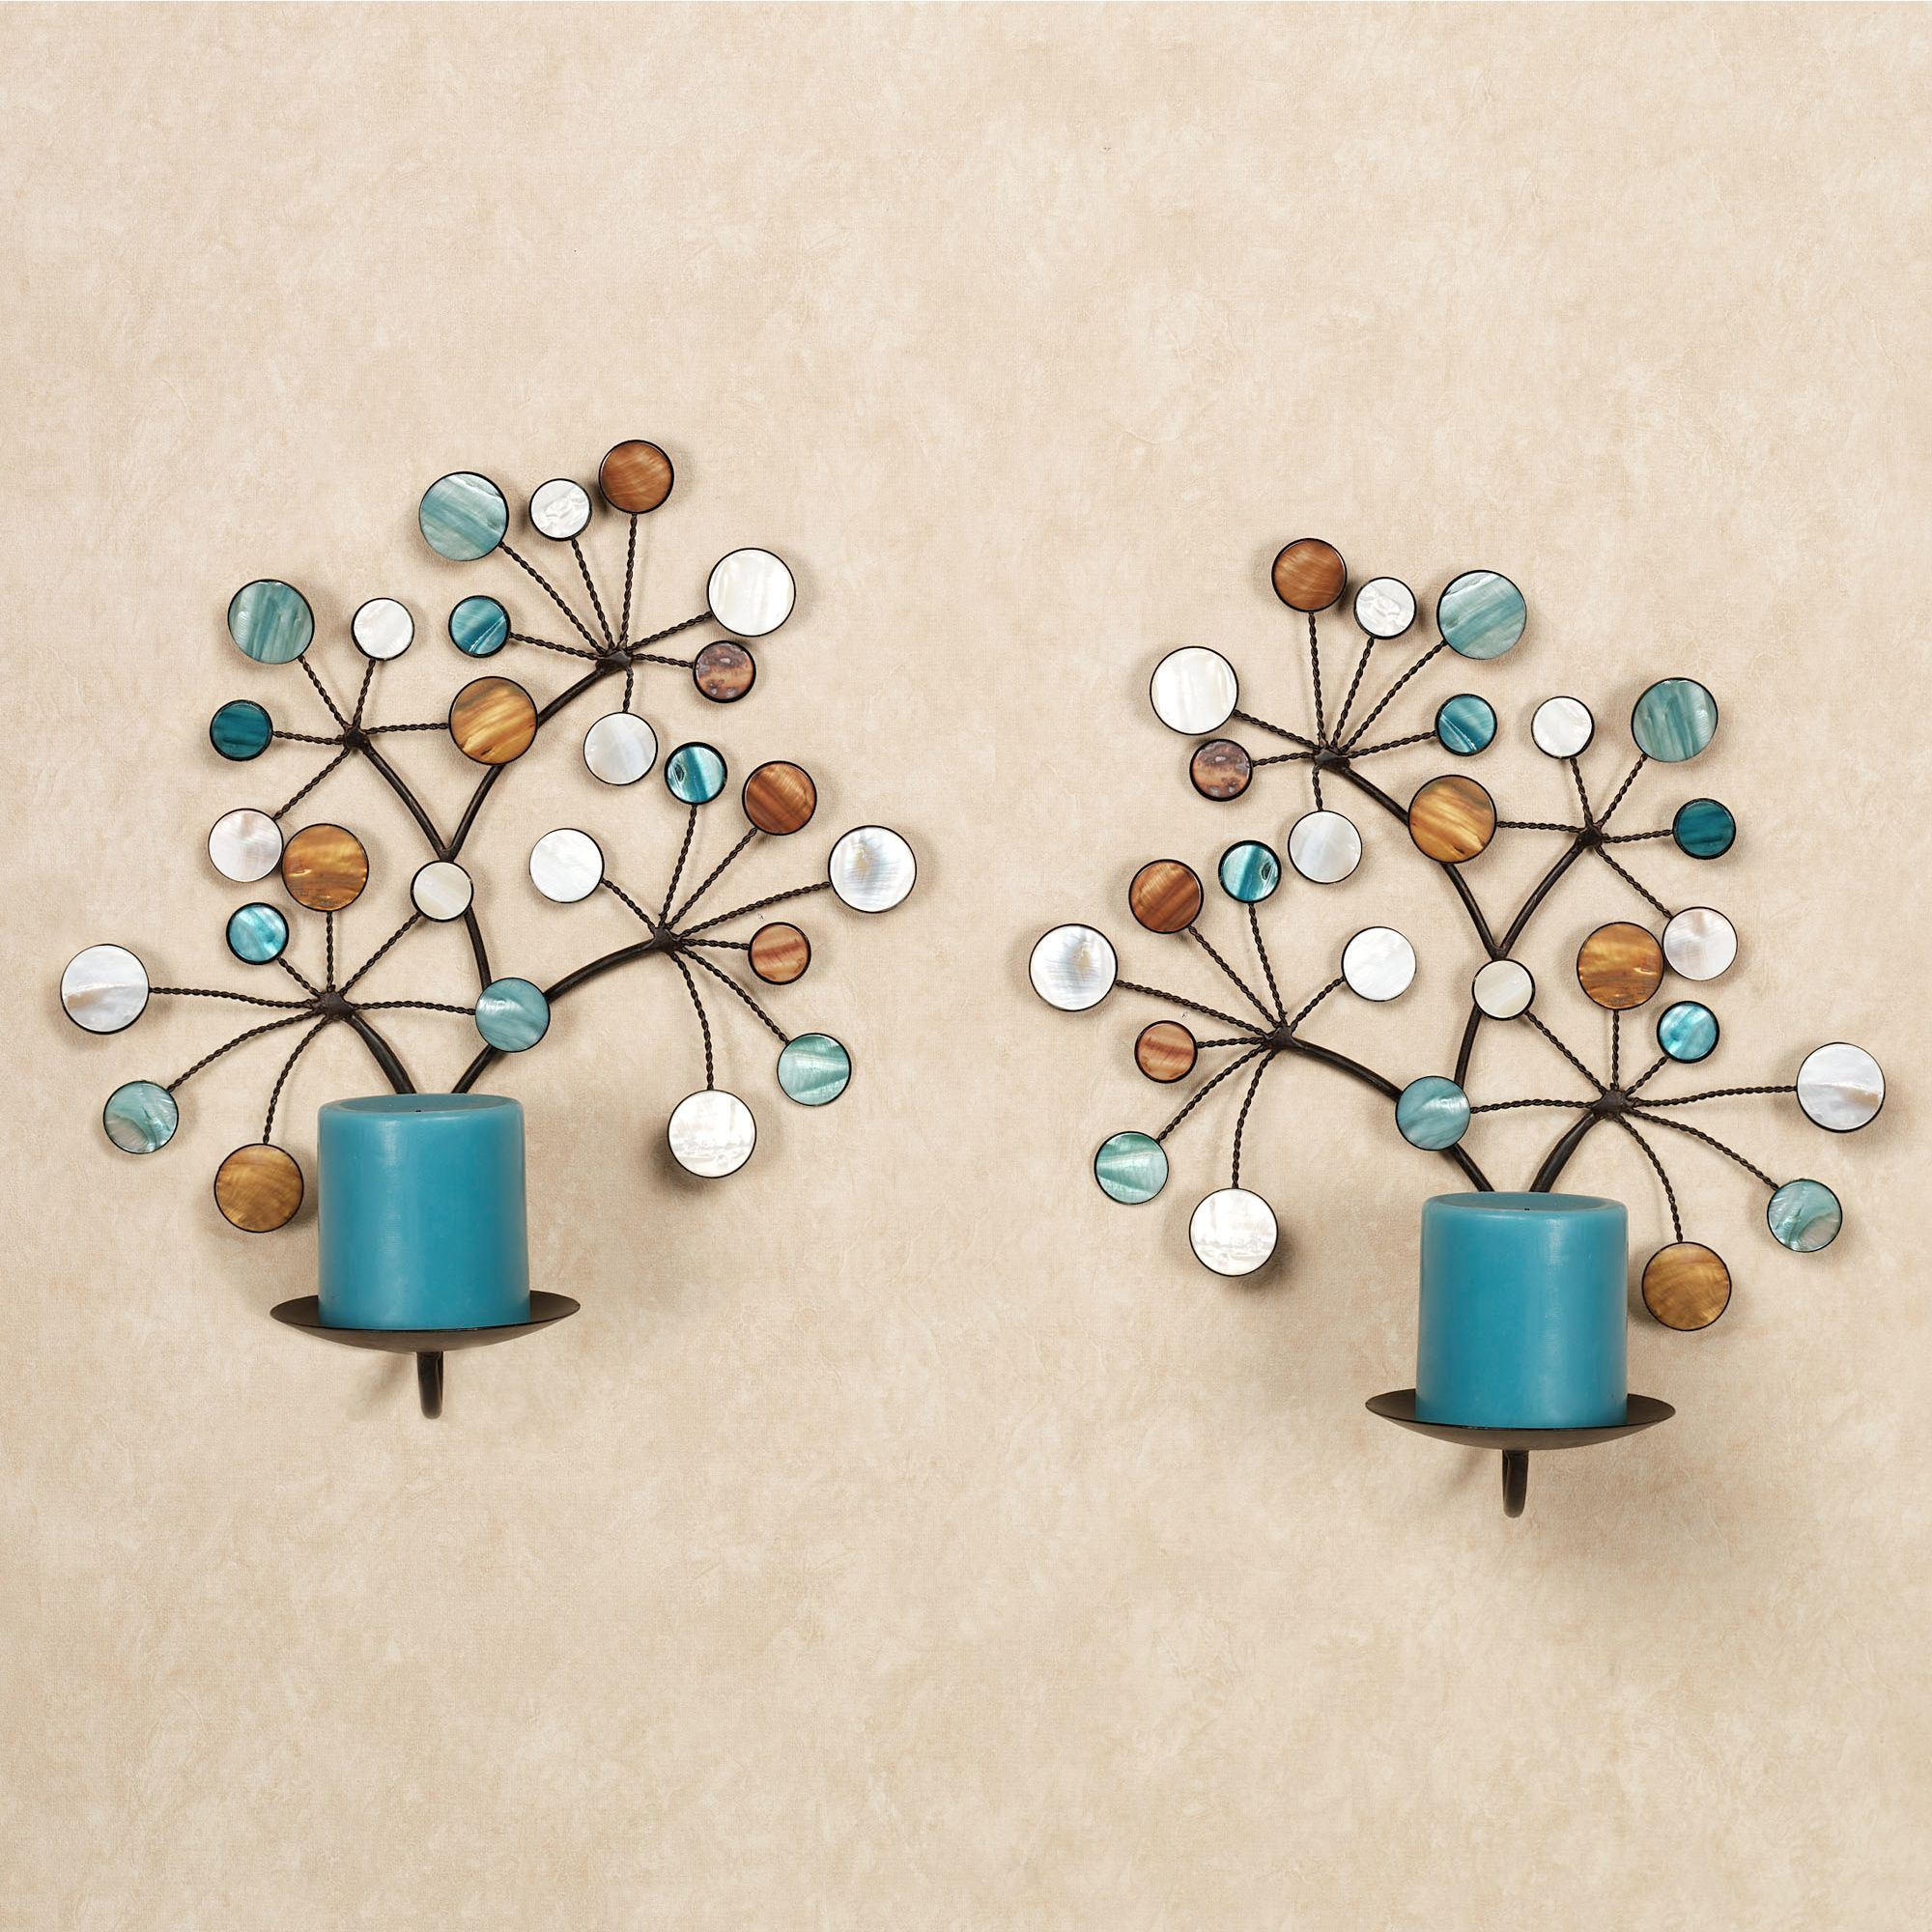 Small wall sconces images home wall decoration ideas small wall sconces and candleholders touch of class capizia wall candleholder set amipublicfo images amipublicfo Gallery